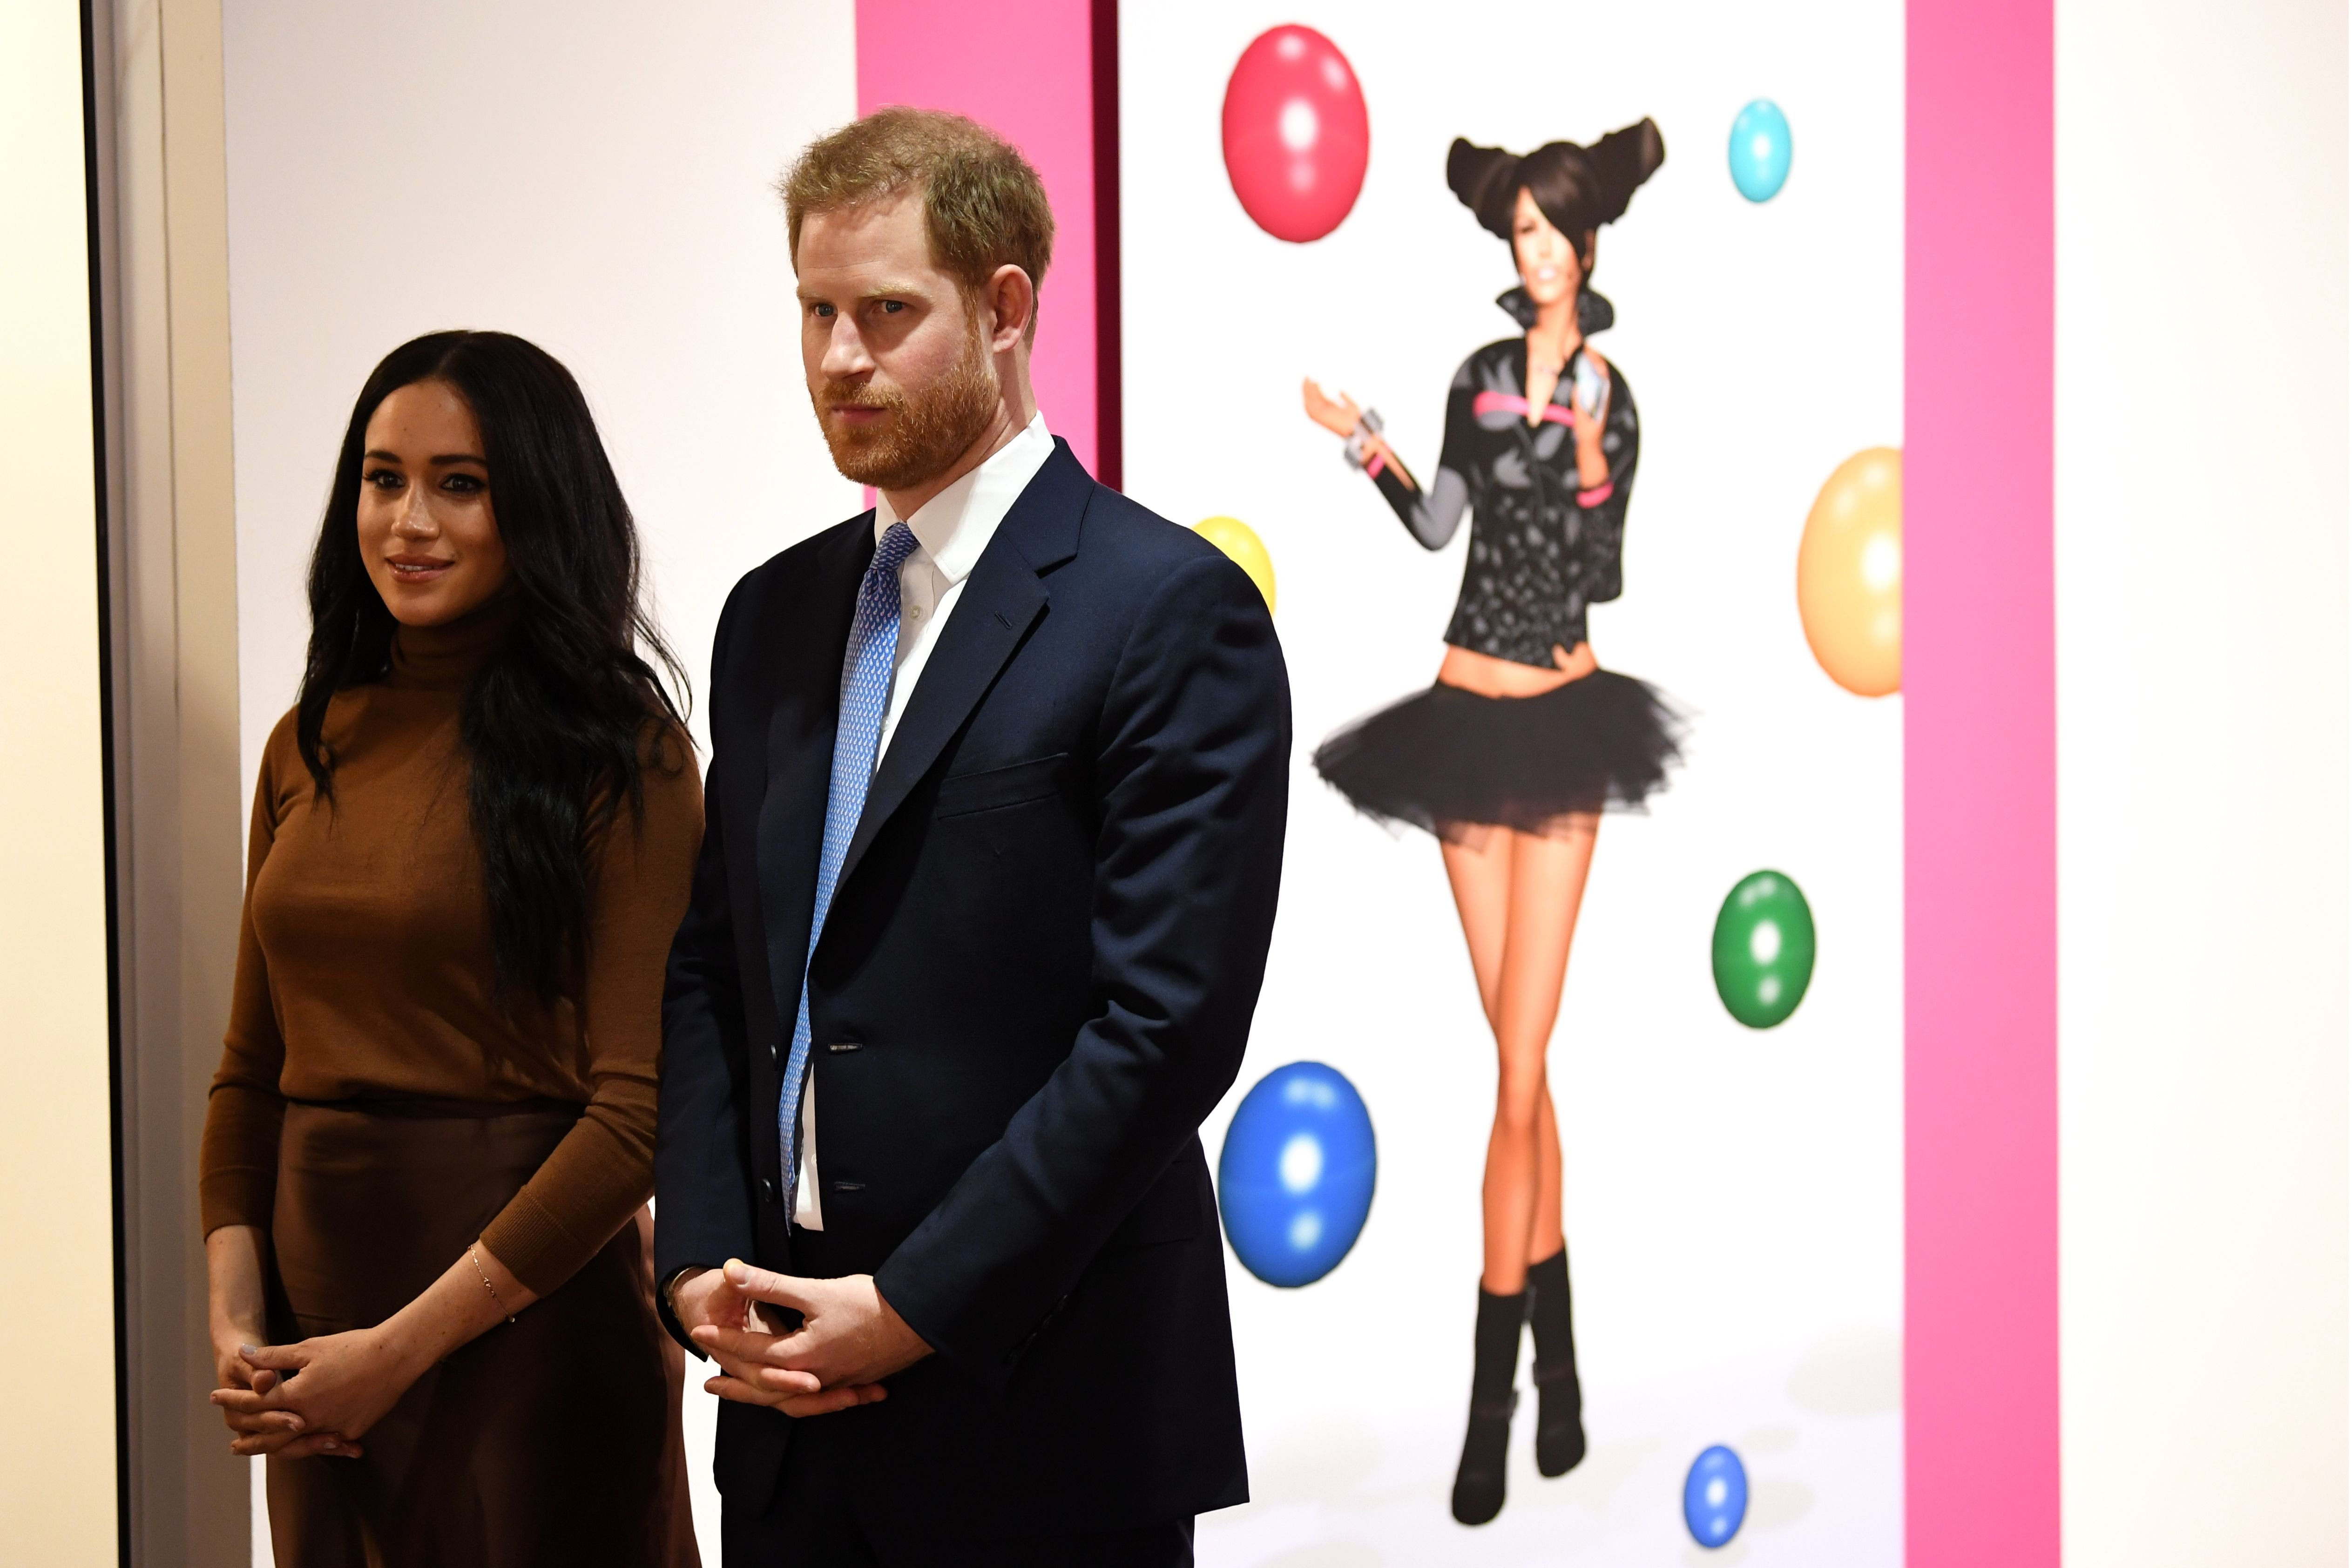 Duchess Meghan and Prince Harry view a special exhibition of art at the Canada Gallery during their visit to Canada House on January 7, 2020, in London, England | Photo: Daniel Leal-Olivas - WPA Pool/Getty Images